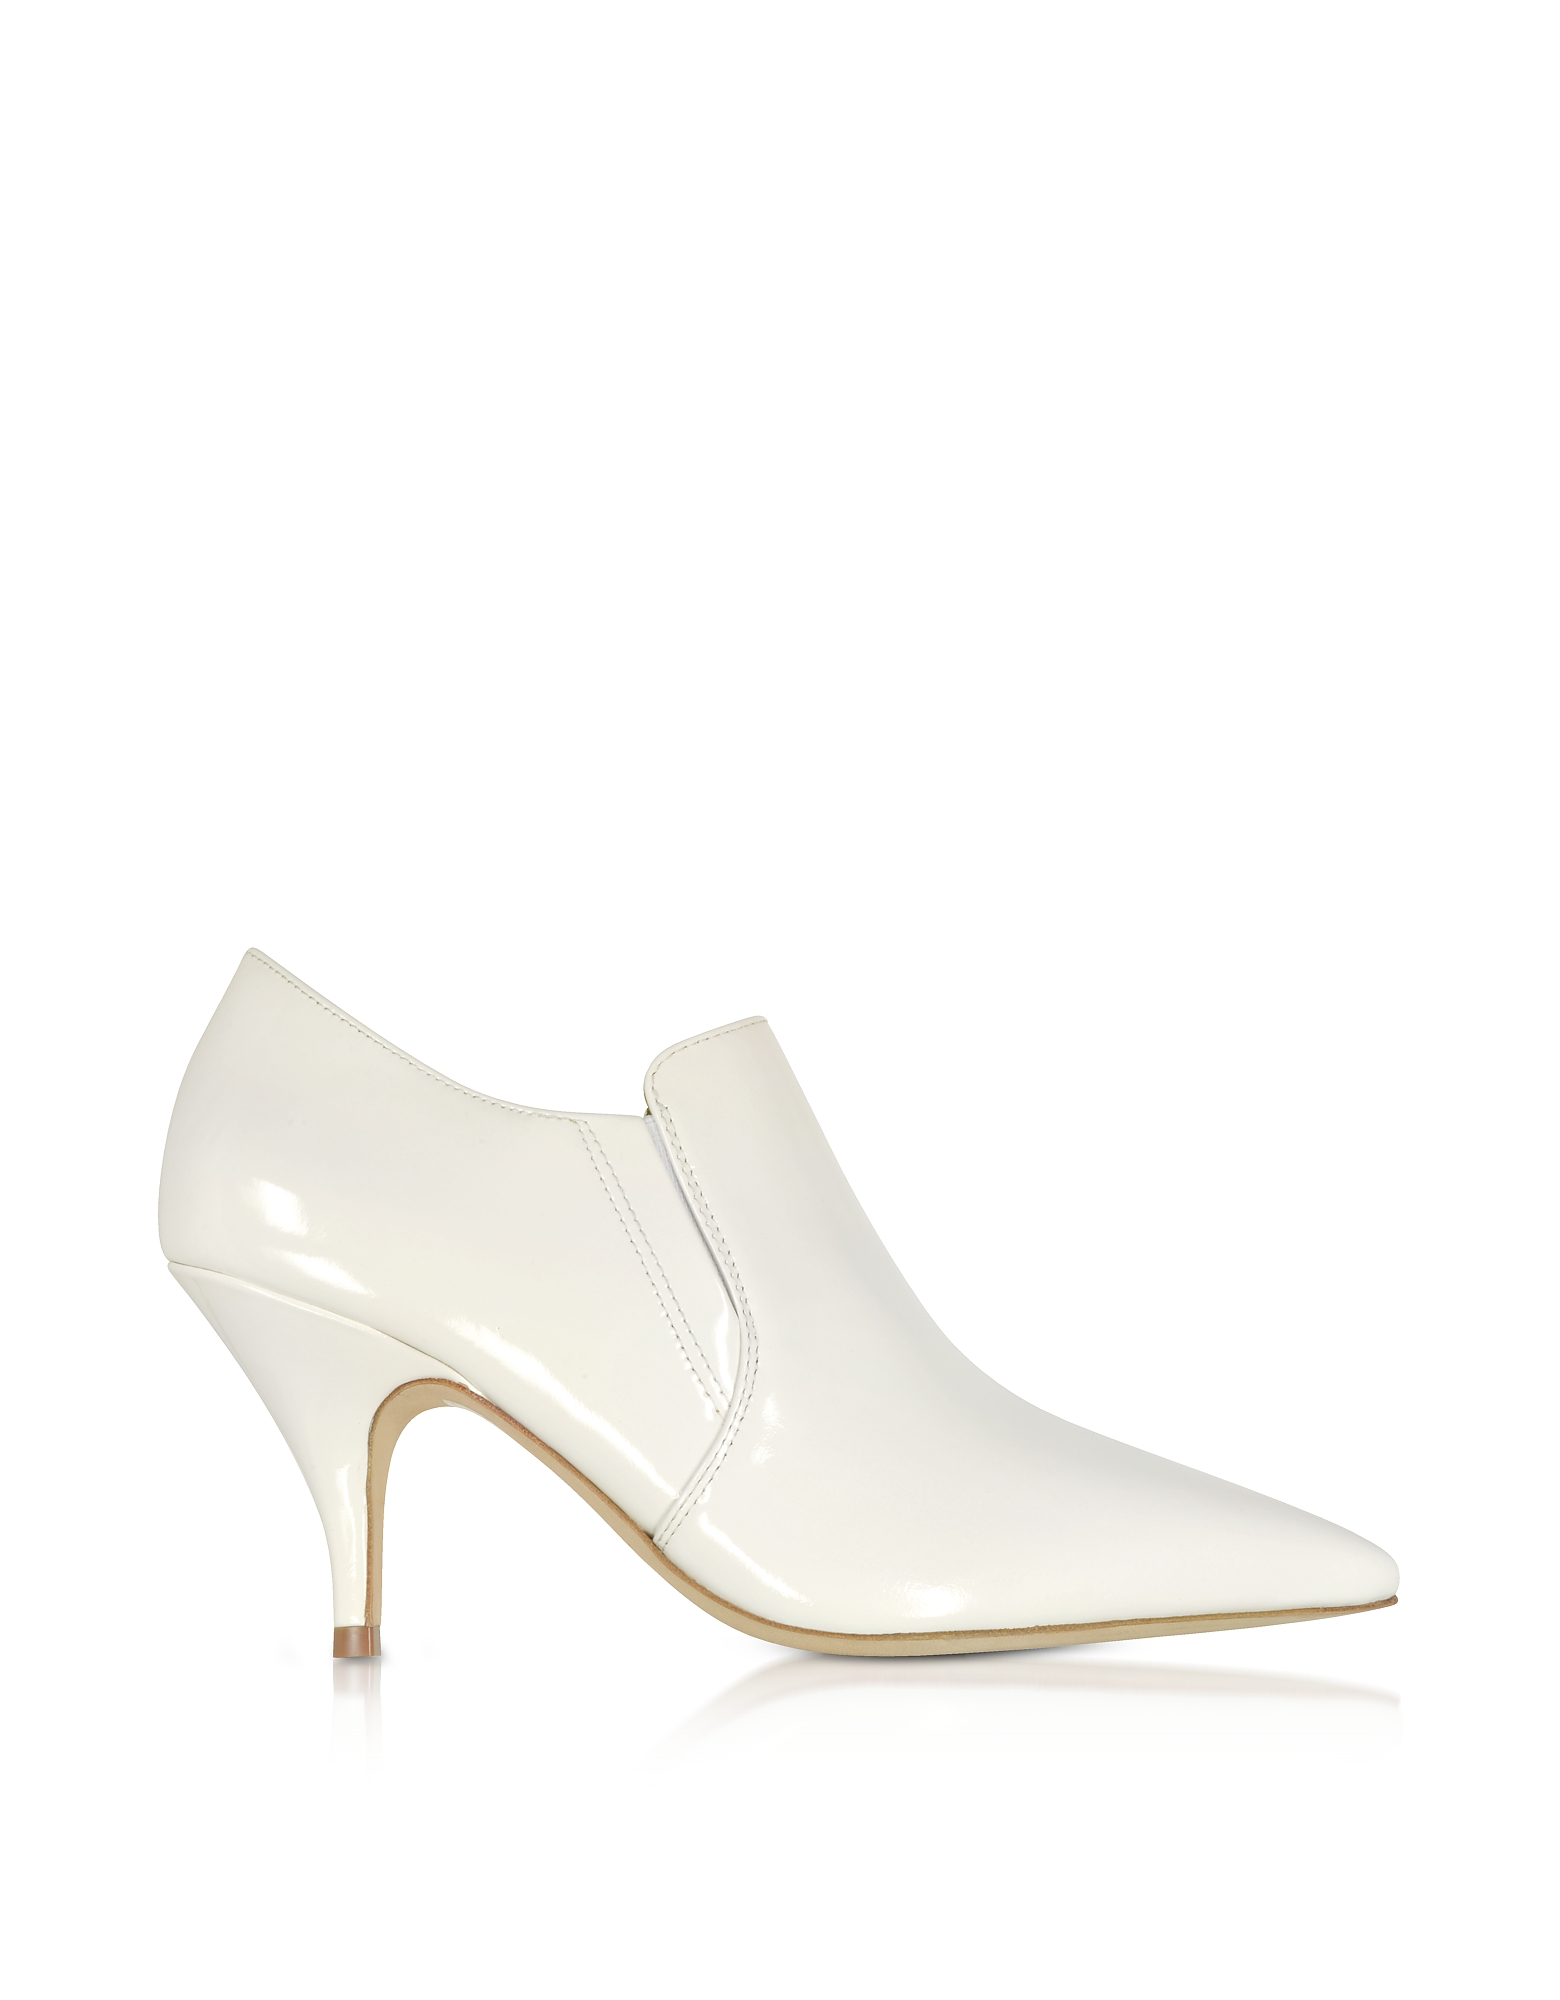 Tory Burch Shoes, Georgina White Patent Leather Bootie